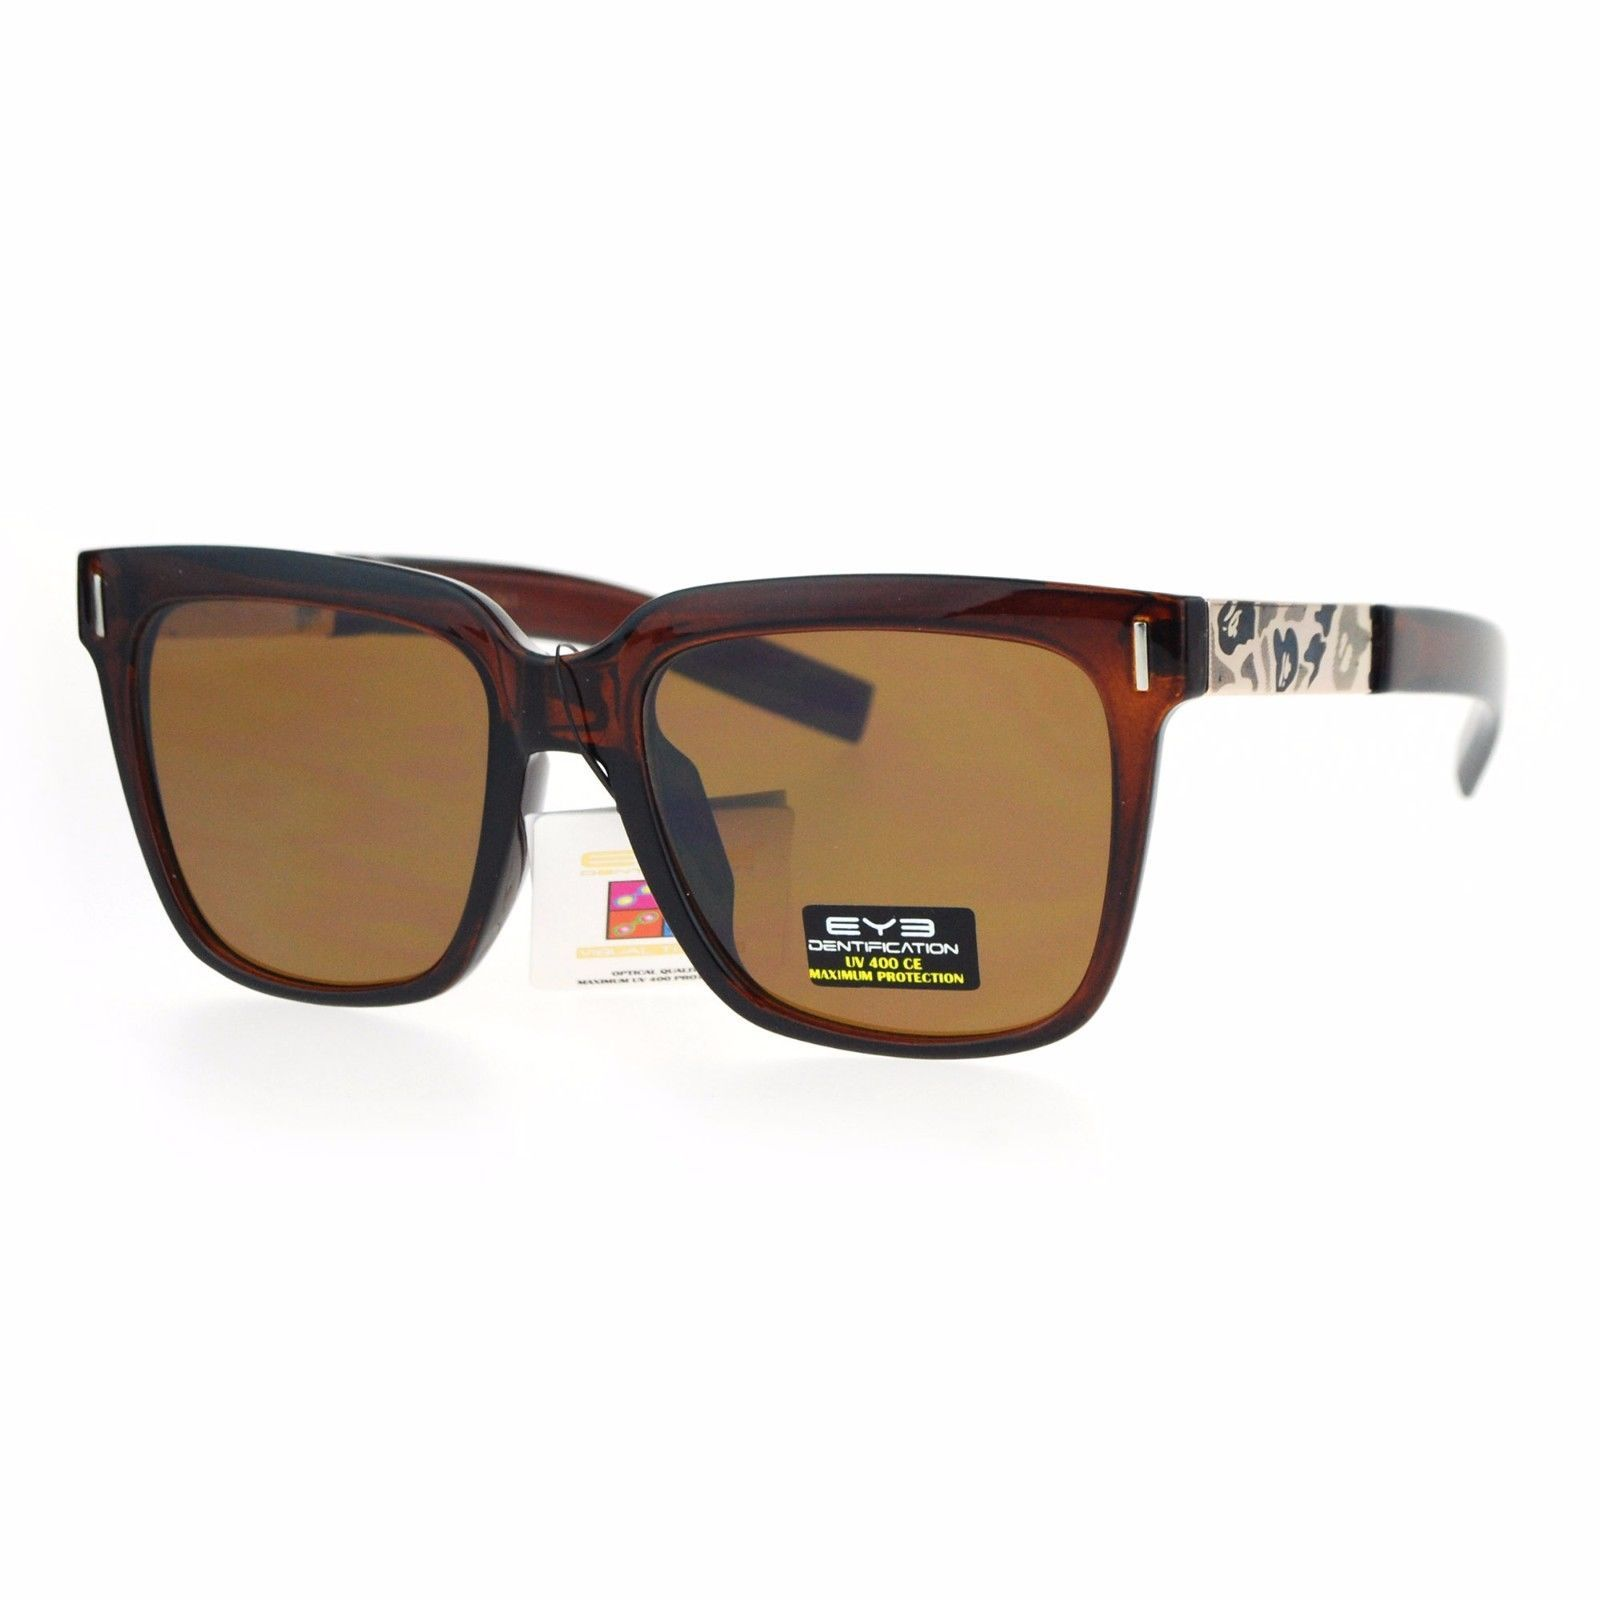 Unisex Square Frame Sunglasses Camo Design Metal Plate Temple UV 400